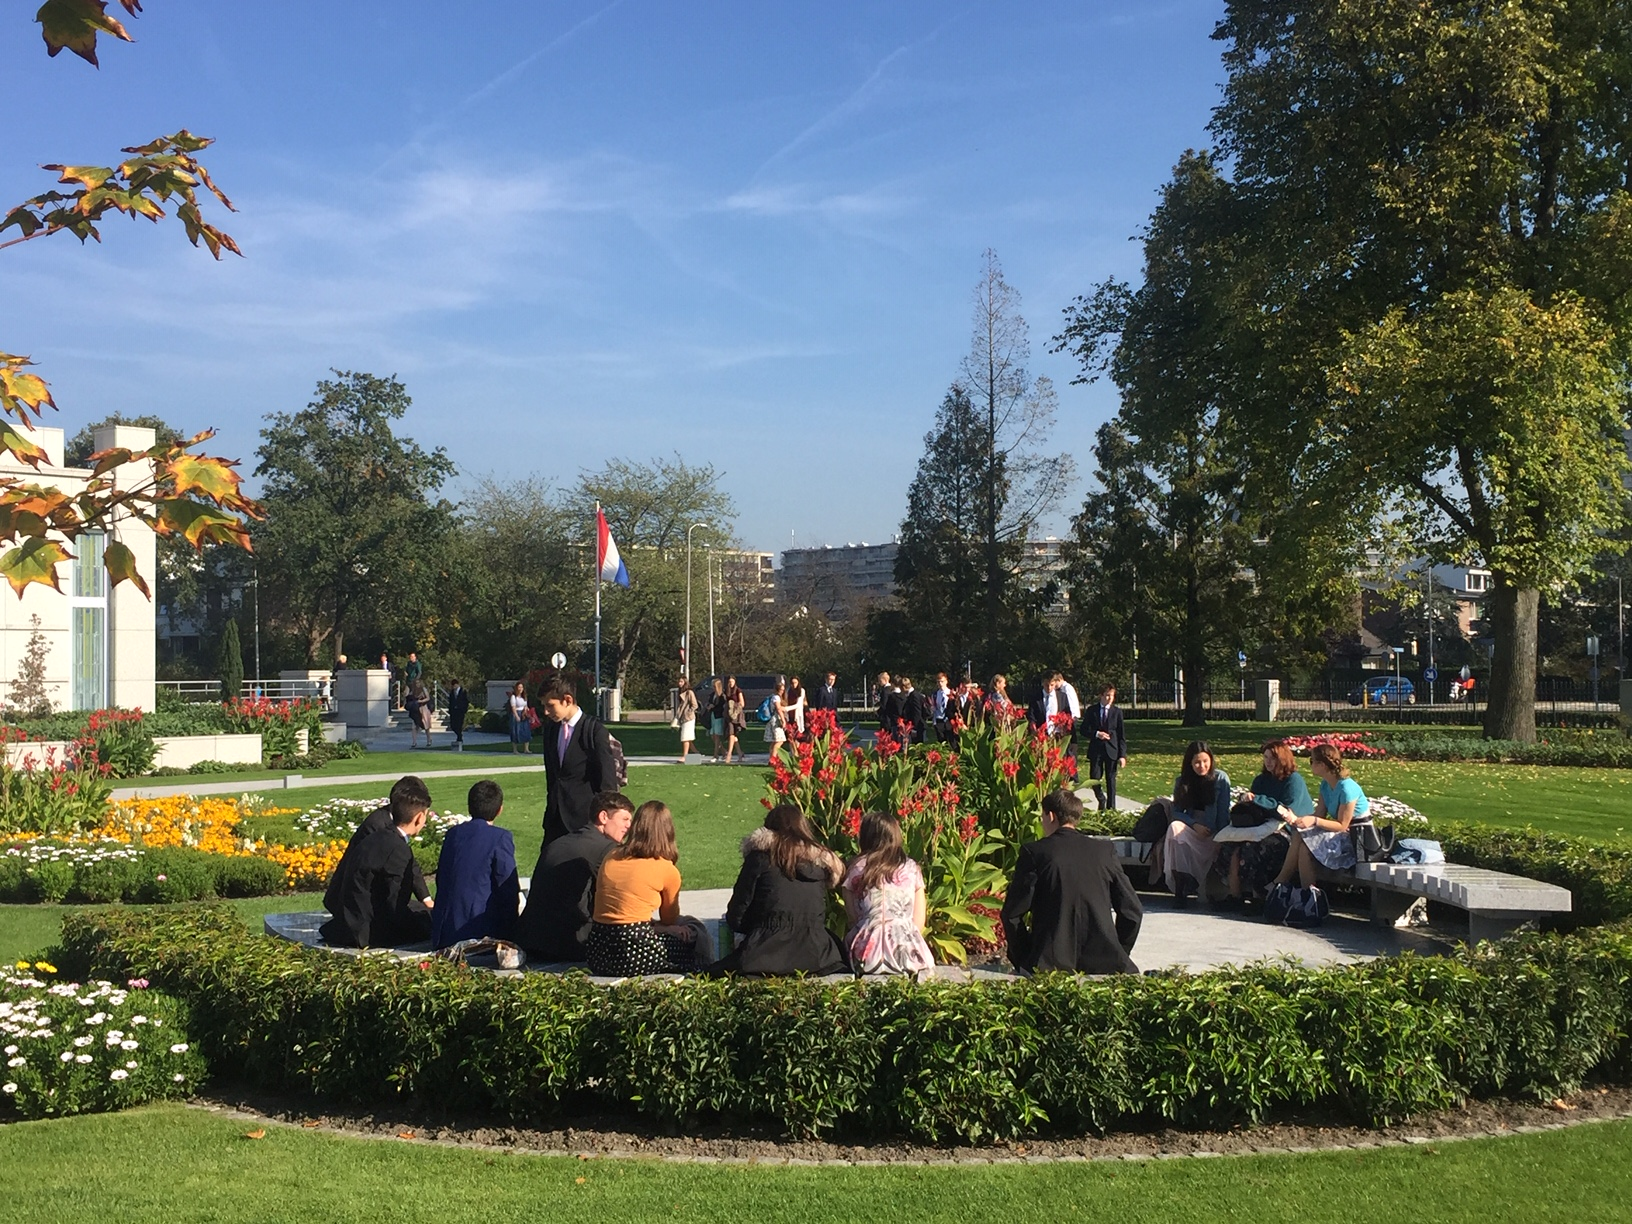 Youth from the Friedrichsdorf Germany Stake sit on the grounds of The Hague Netherlands Temple during the stake's October 2018 temple trip.